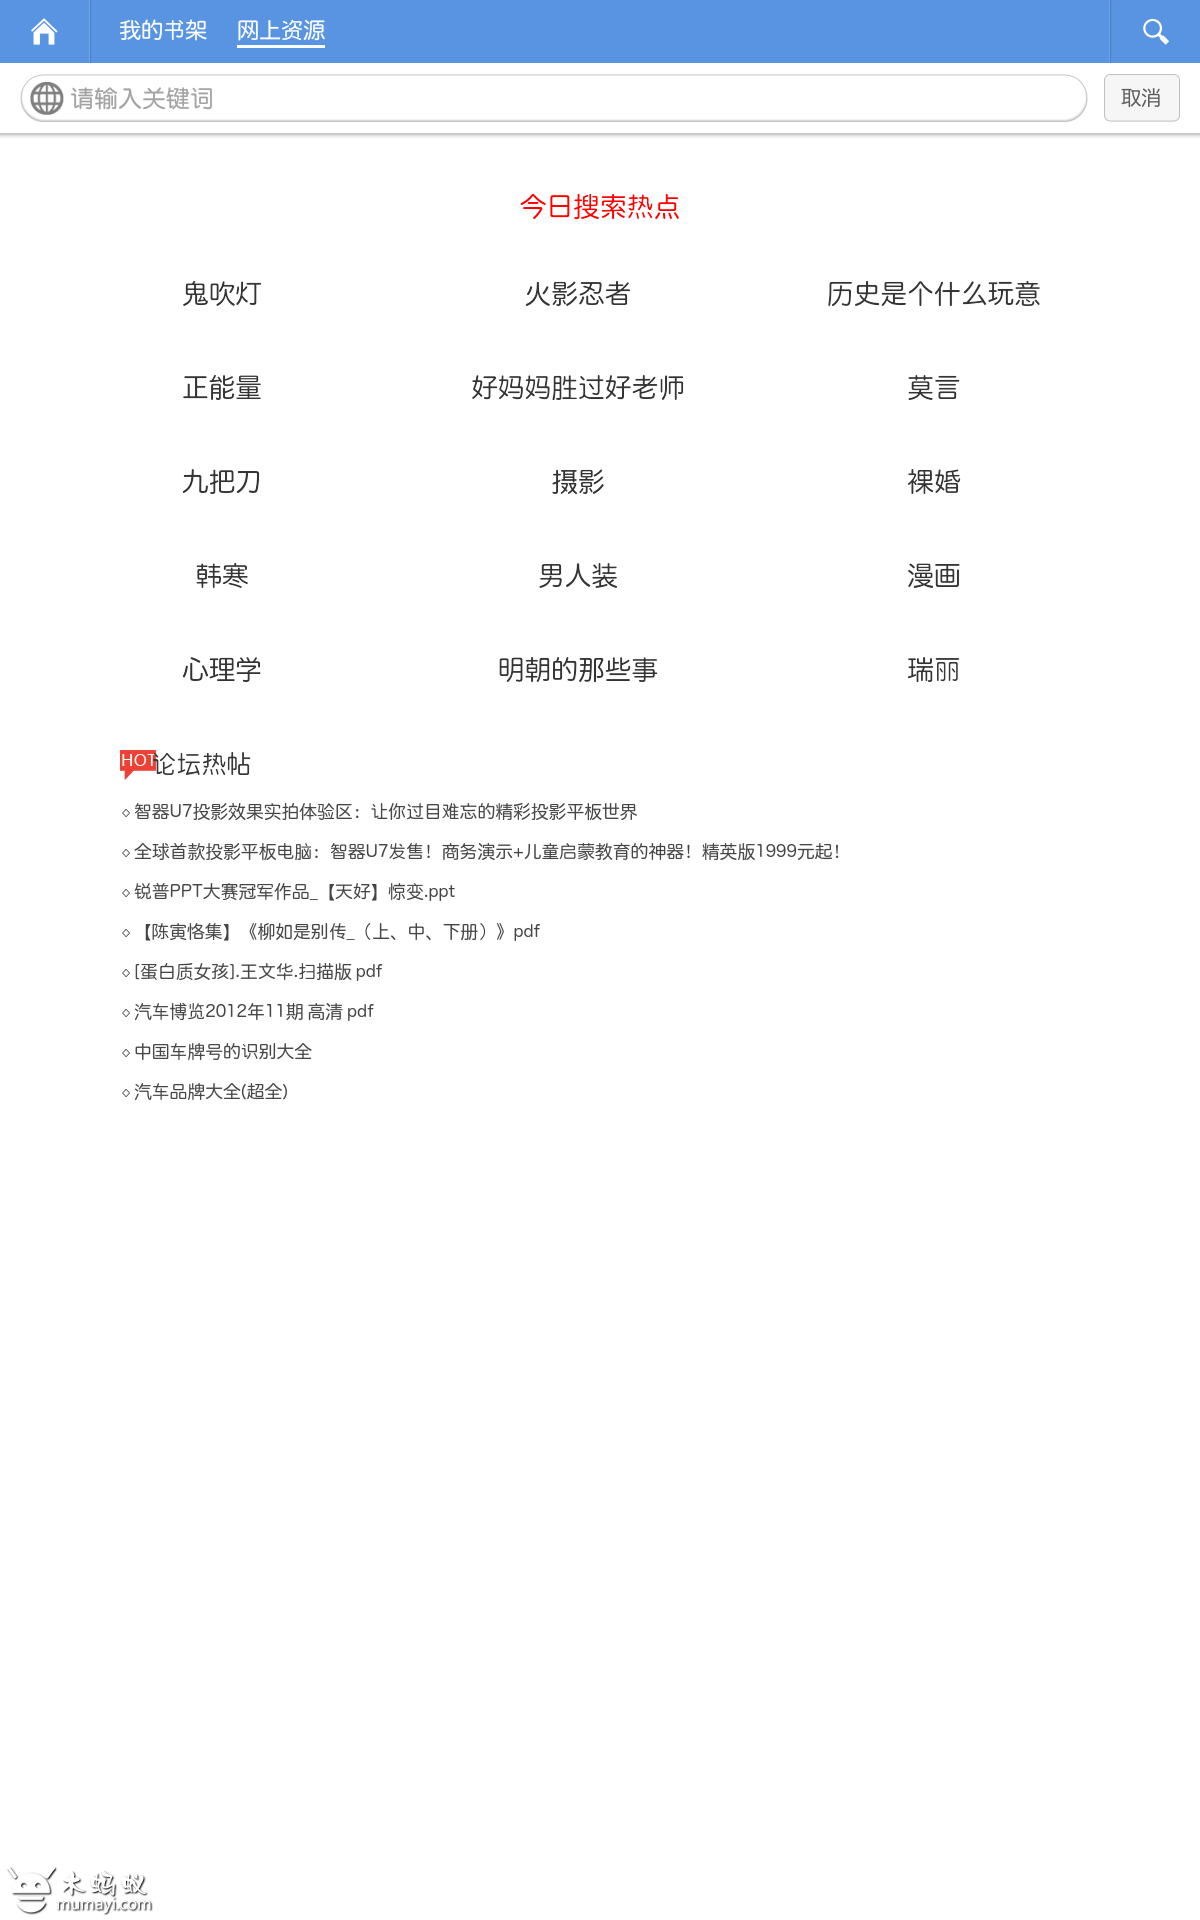 Screenshot_2012-12-08-11-36-21.png